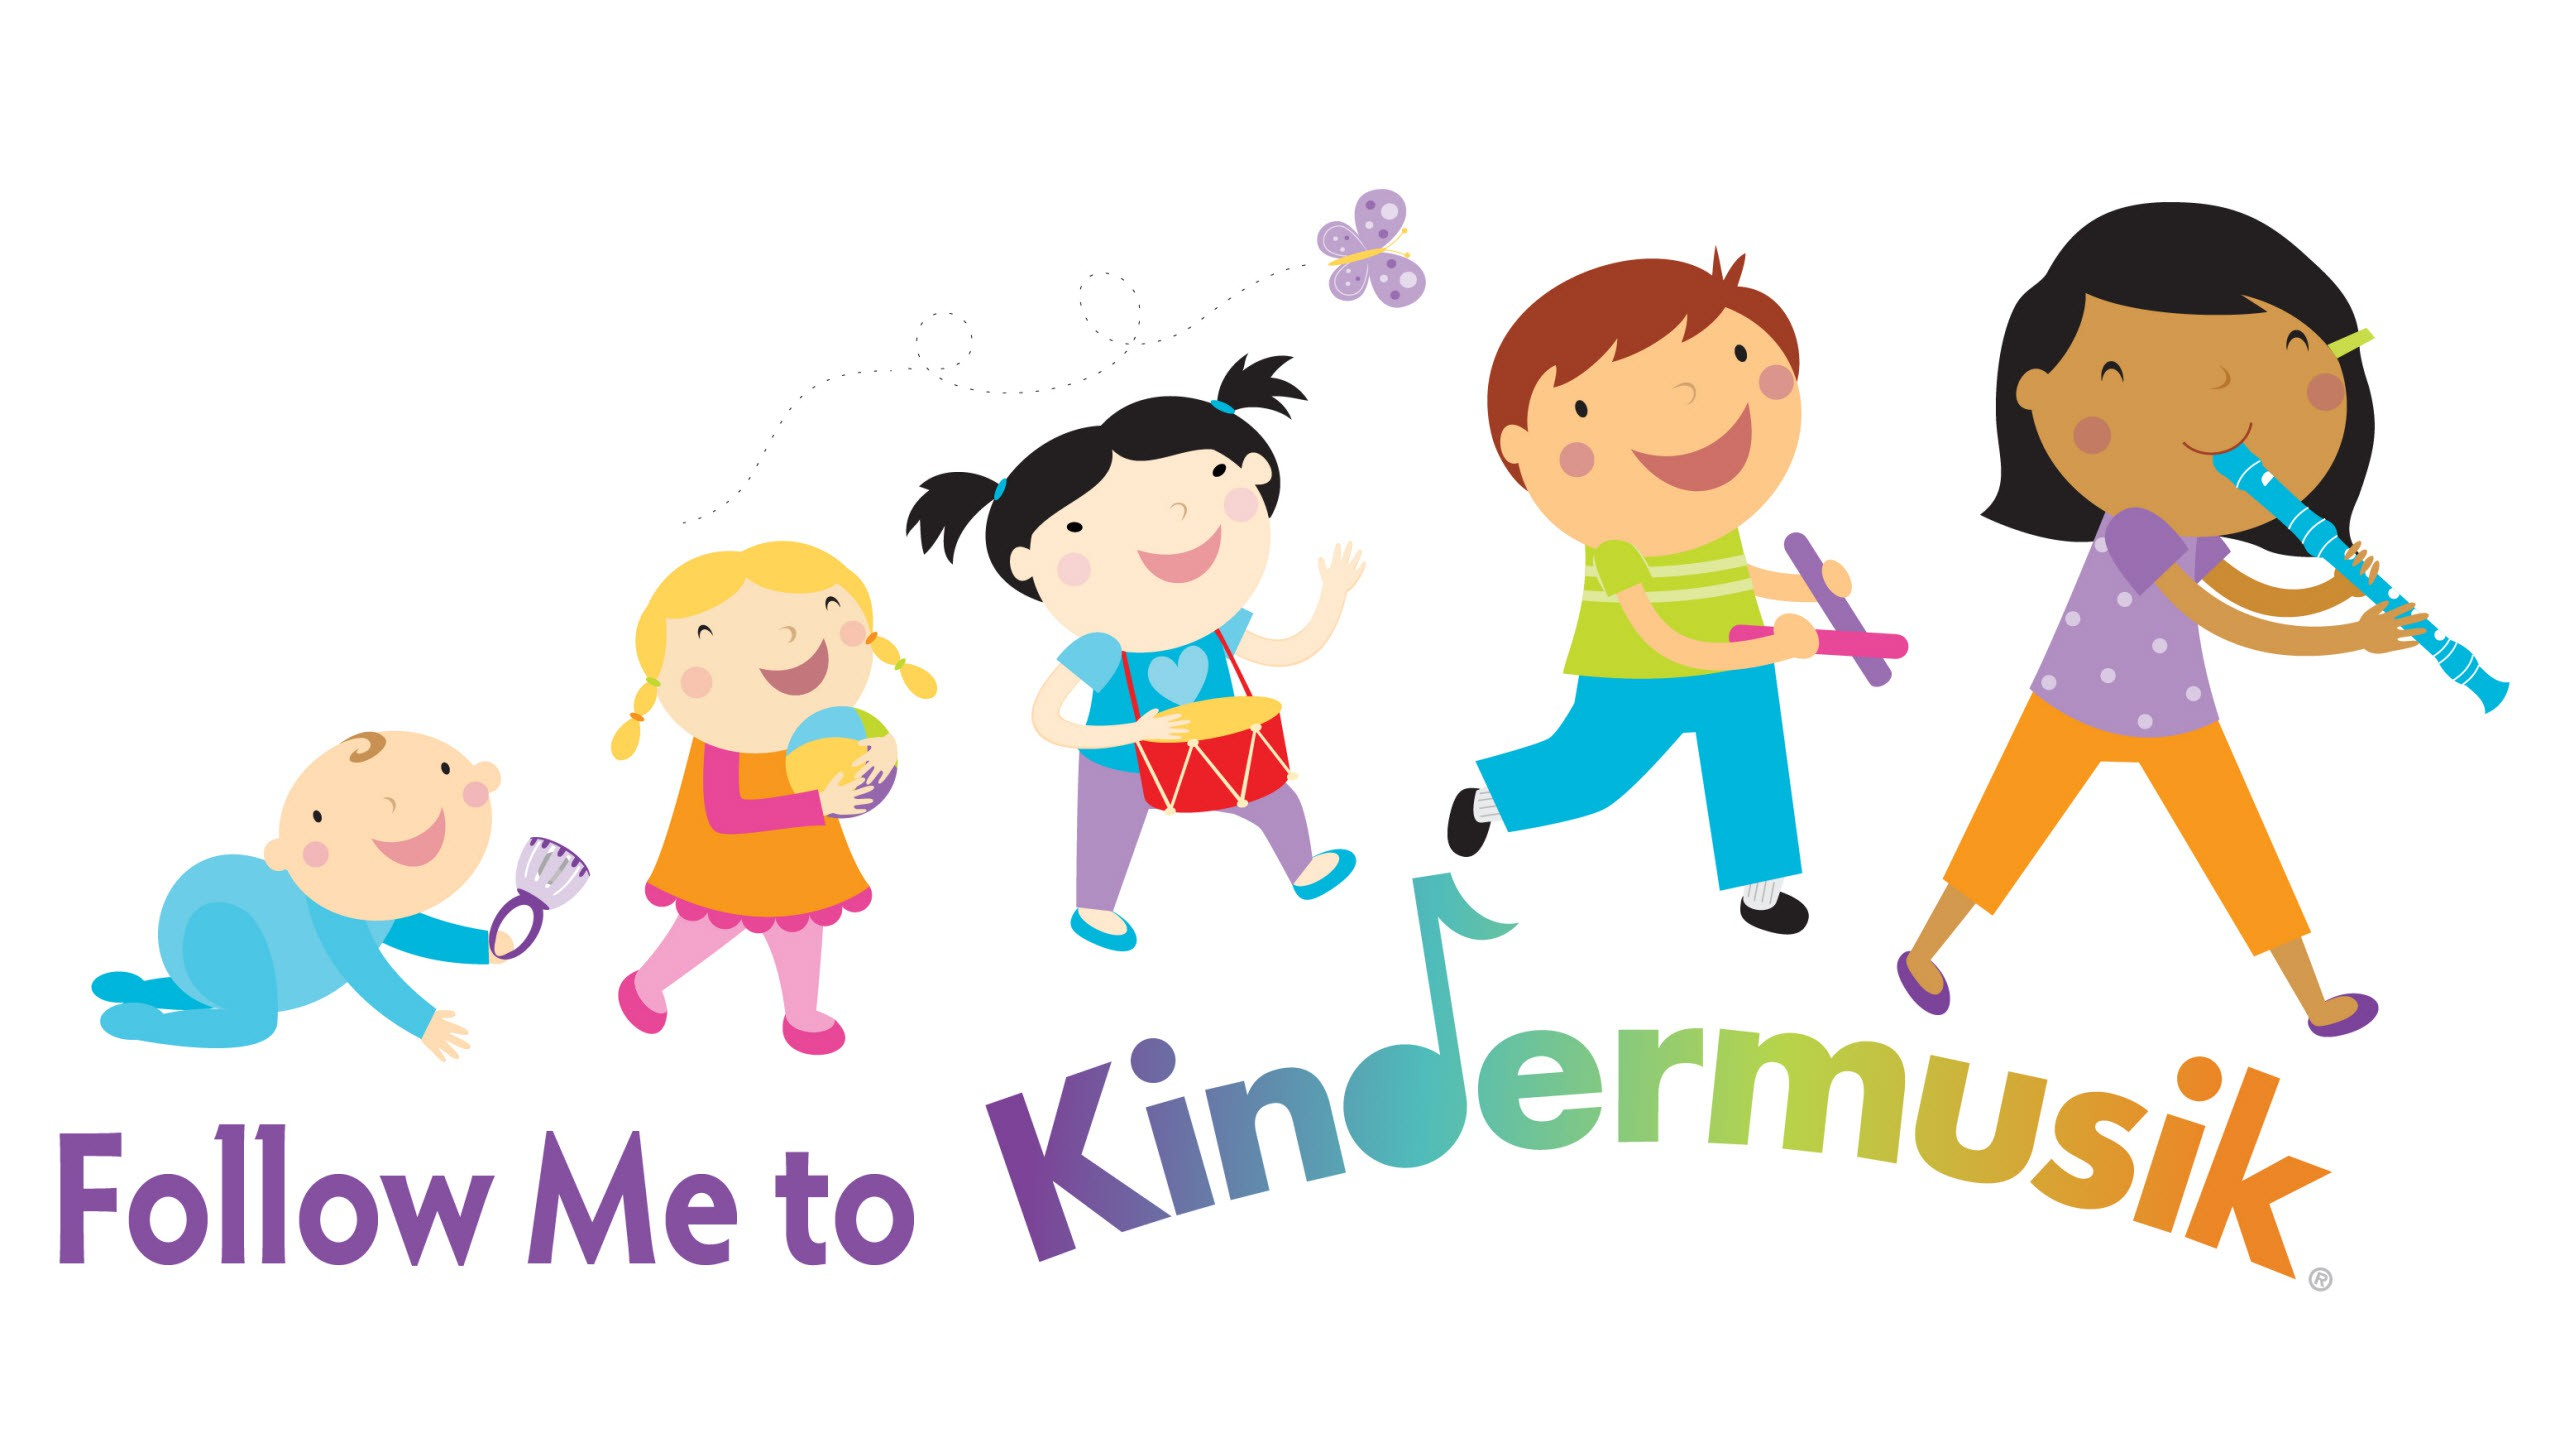 Graphic-Follow-Me-to-Kindermusik-1-2560x1440-2560x1440